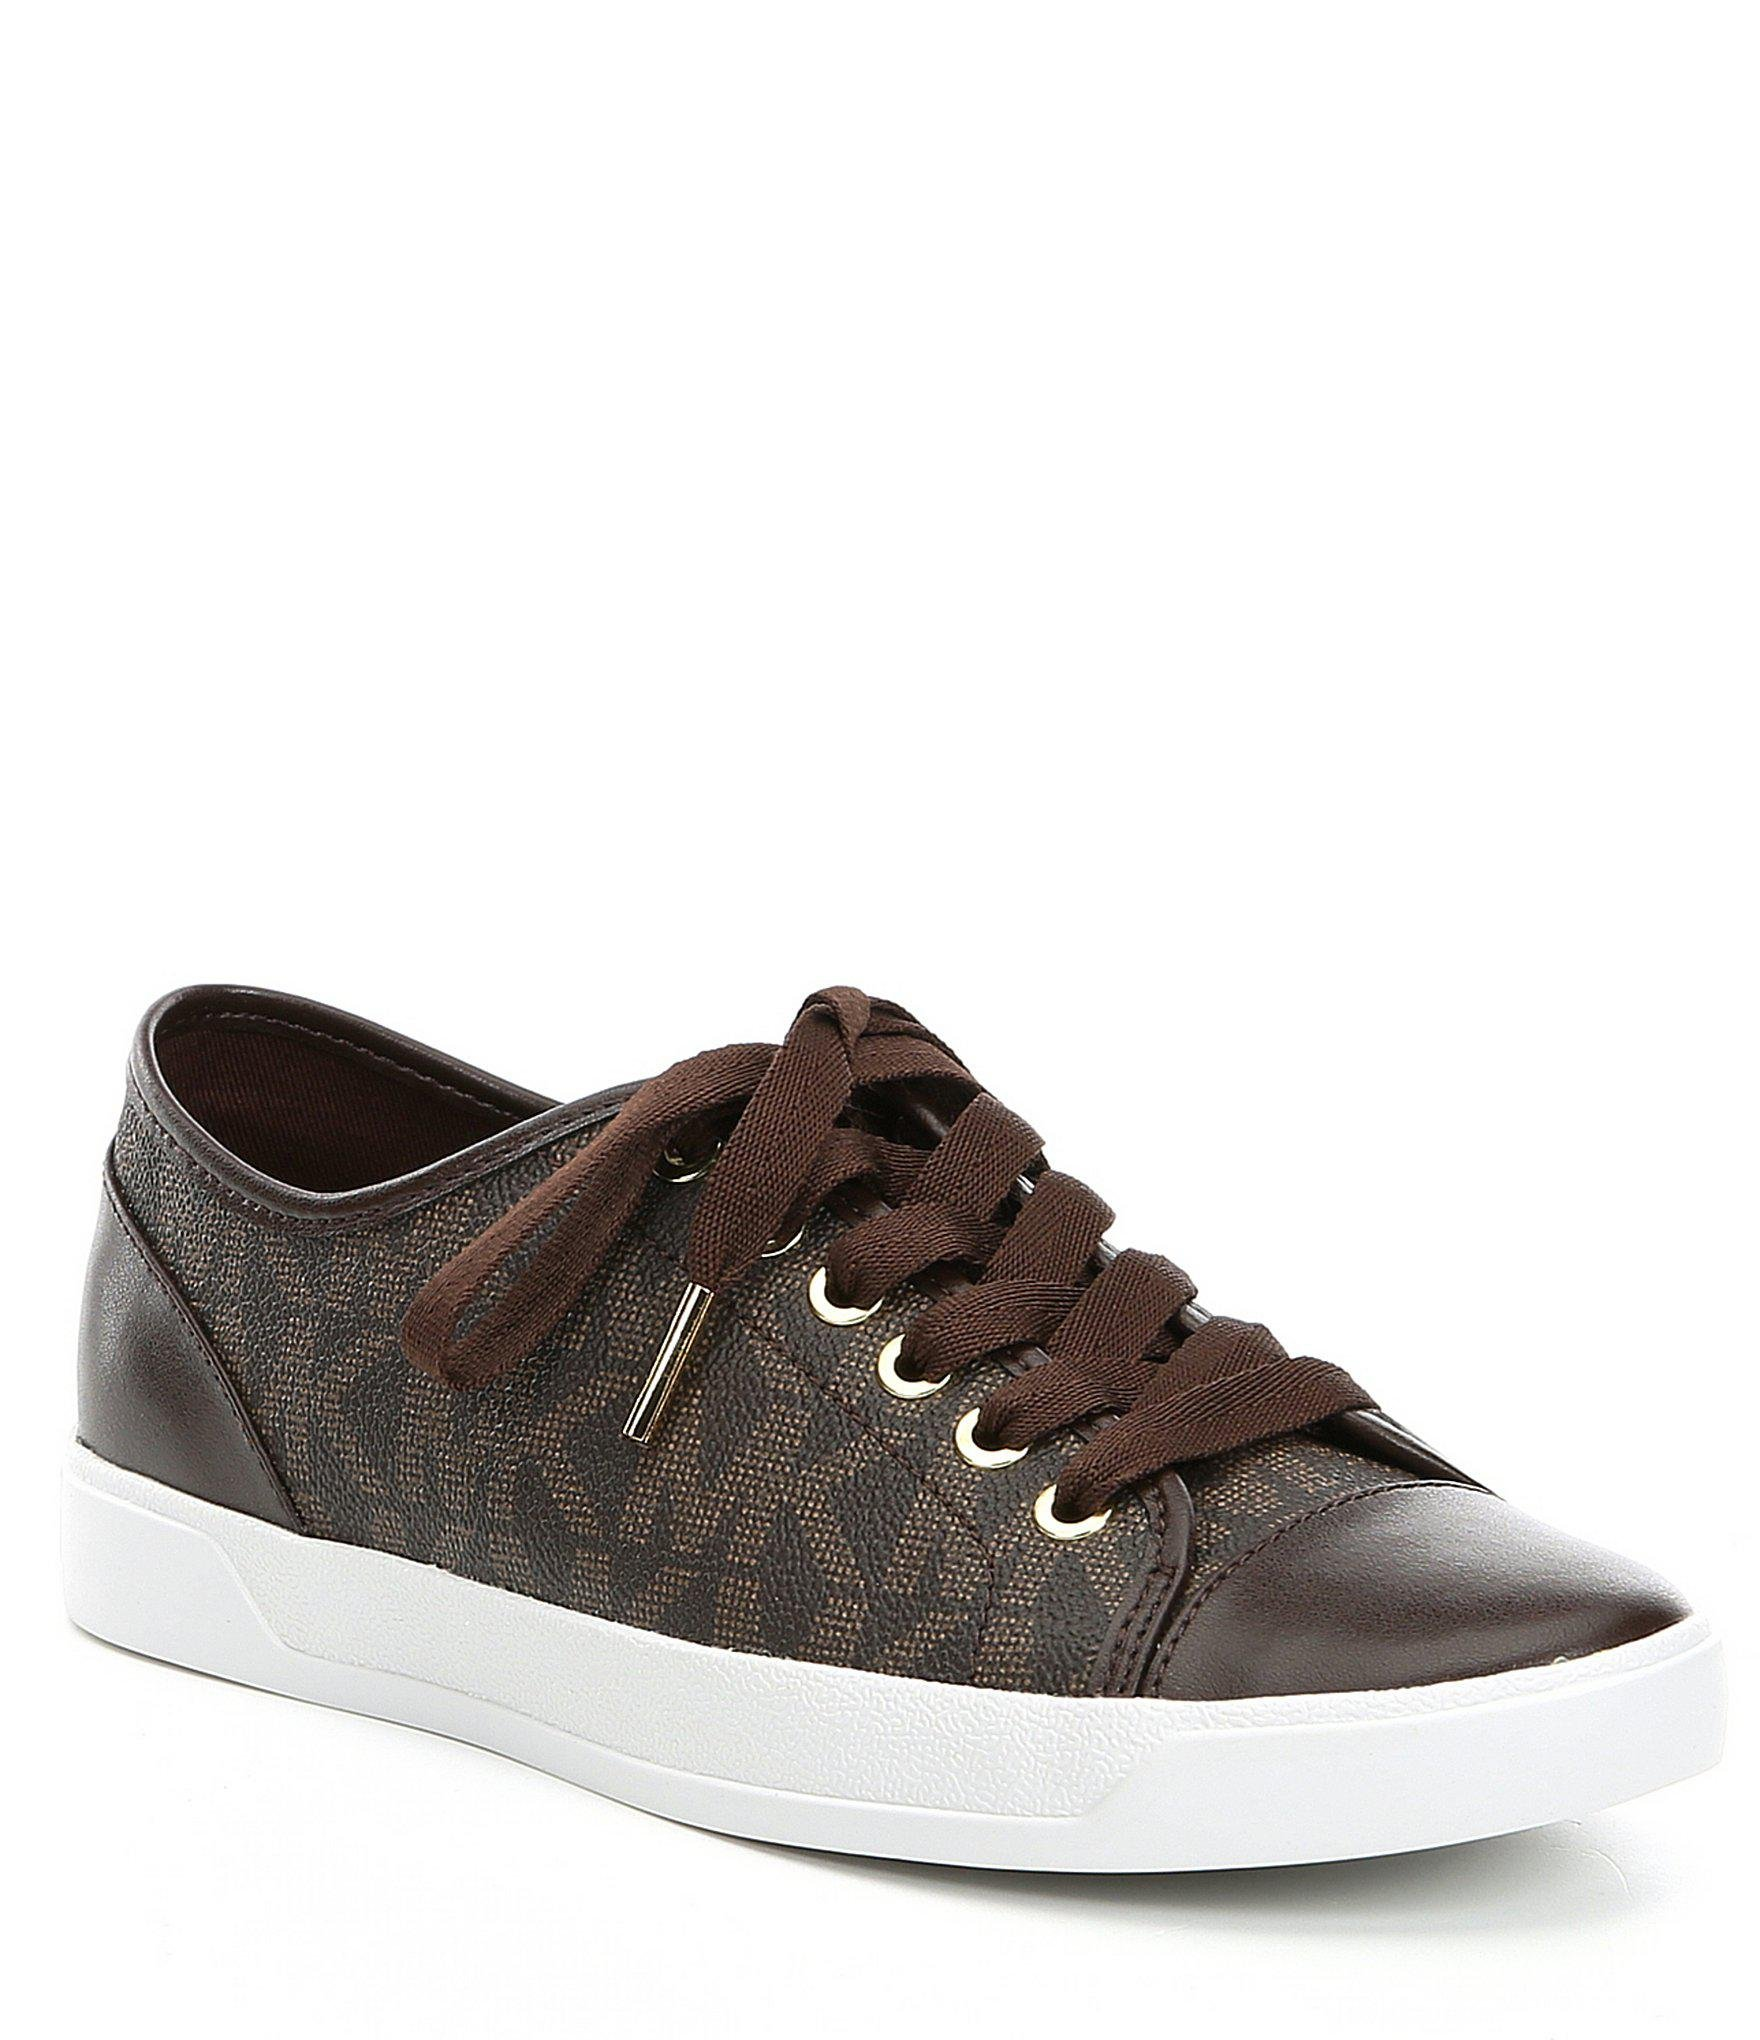 ecd1a172b8a4 Lyst - MICHAEL Michael Kors Mk City Sneakers in Brown